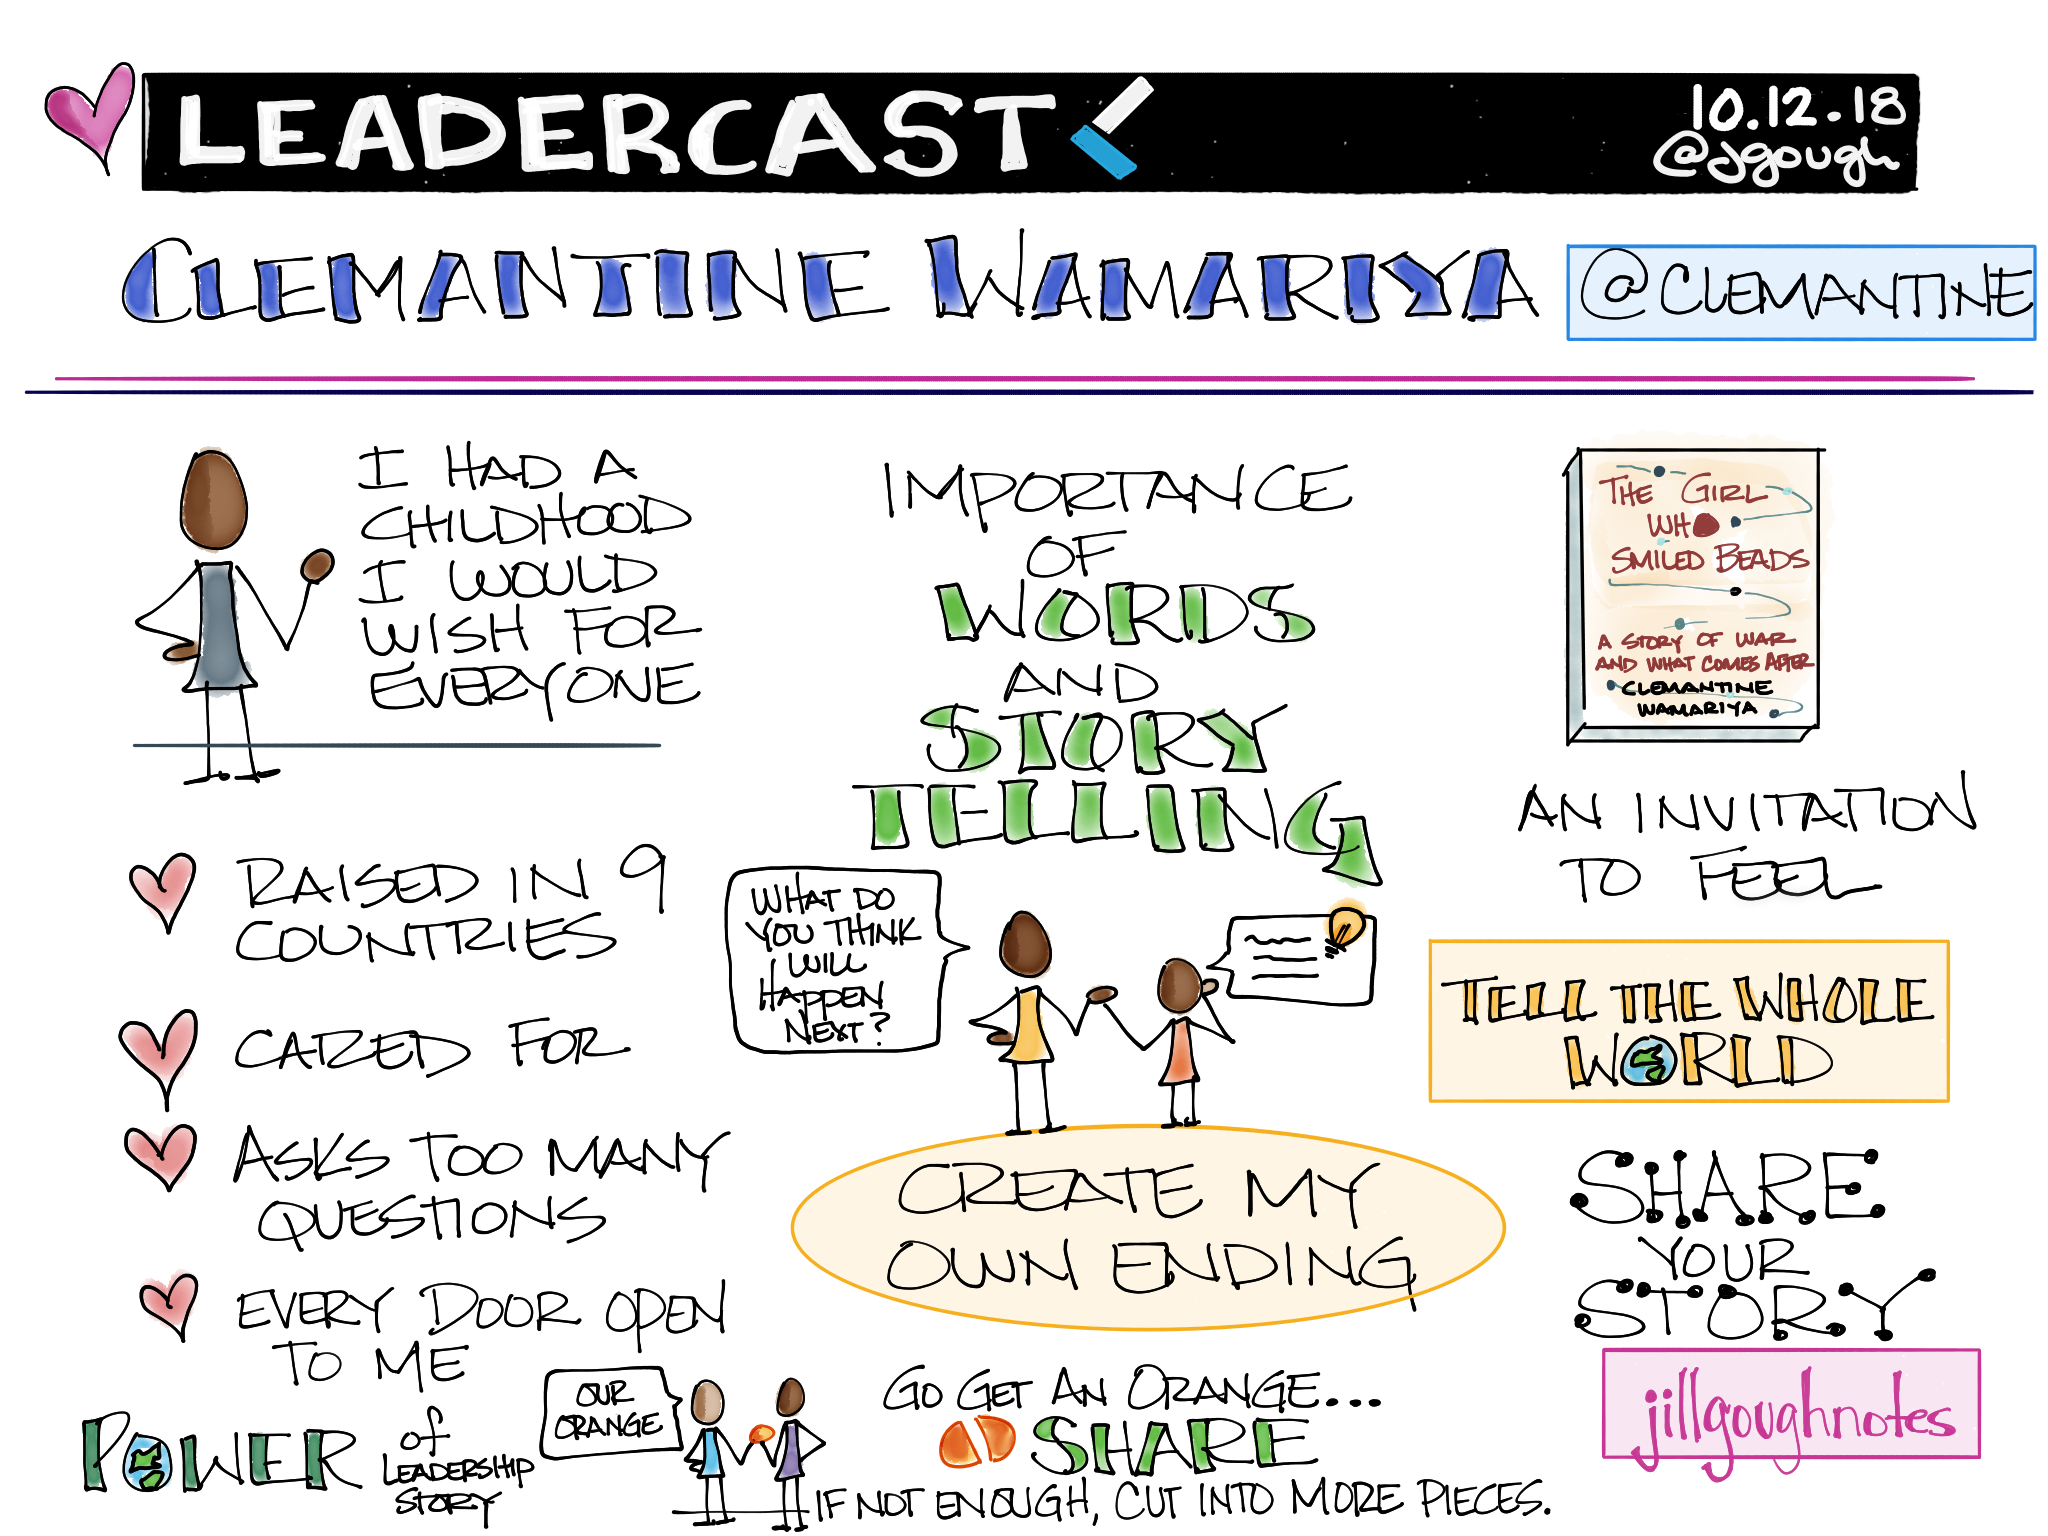 Sharing my #Sketchnotes from #LeadercastWomen: @Clemantine1 – Importance of Words and Storytelling – tell the whole world